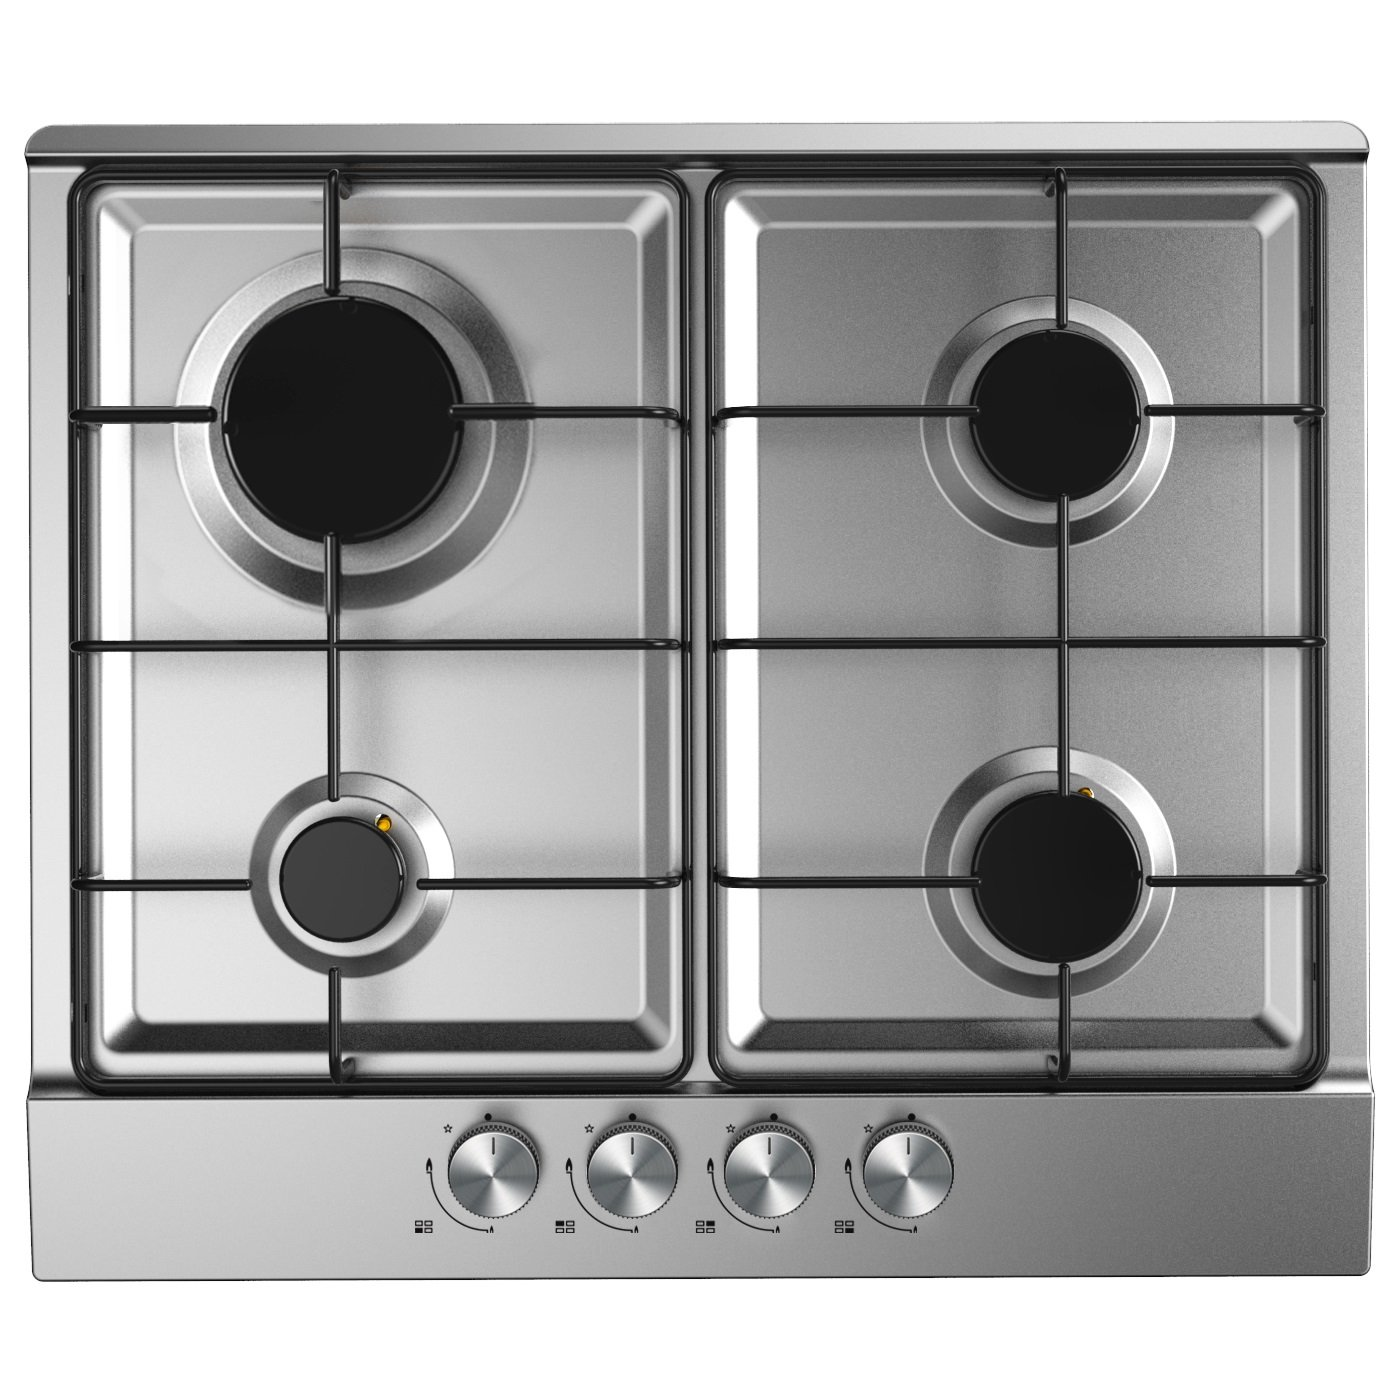 Cookology GH600SS Built-in Gas Hob in Stainless Steel | 60cm & Auto Ignition